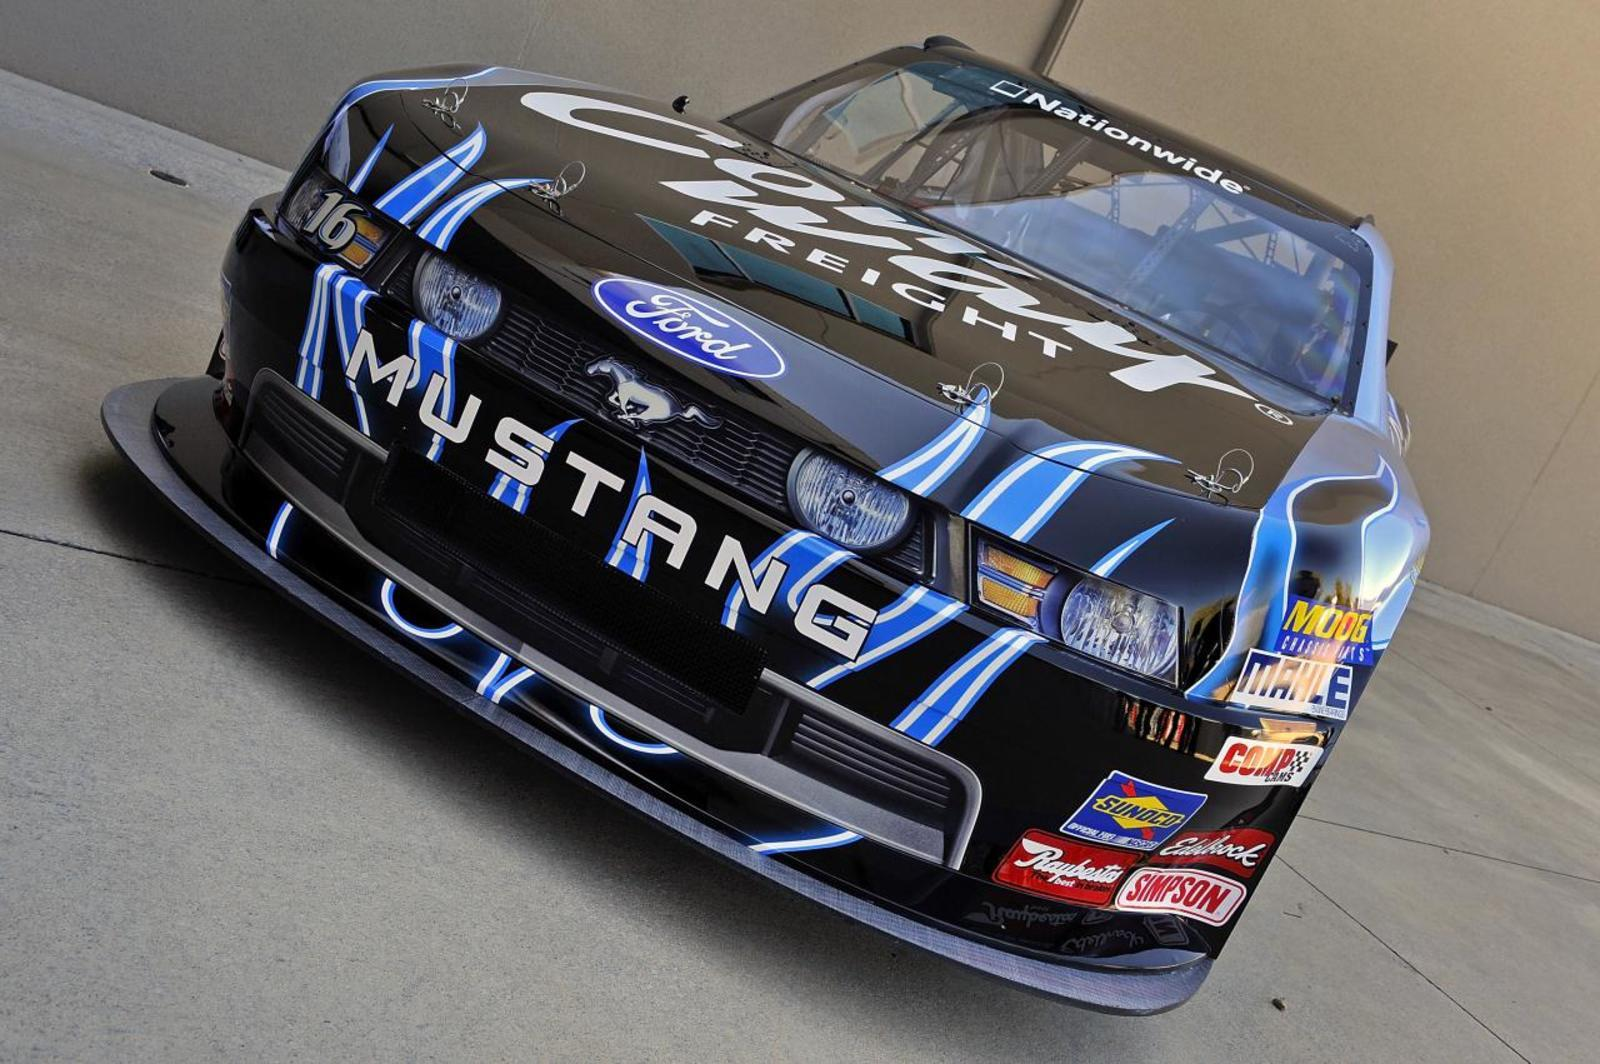 Nascar Racing Games >> 2010 Ford Mustang NASCAR Nationwide Series Race Car Review - Top Speed